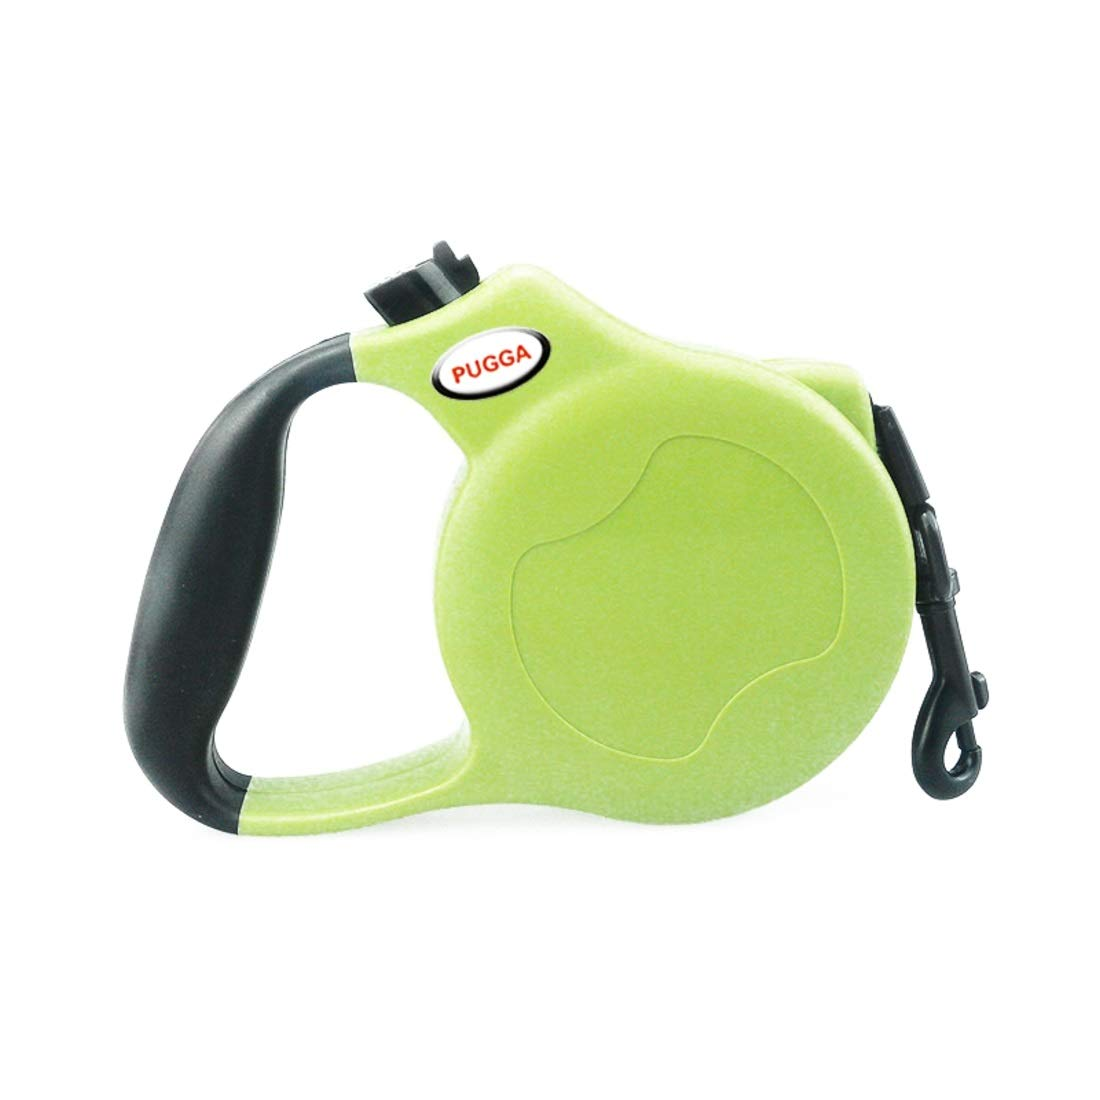 Green 5M-Flat rope Green 5M-Flat rope Souliyan Heavy Duty Retractable Dog Leash Great for Small, Medium & Large Dogs up to 110lbs (color   Green, Size   5M-Flat Rope)